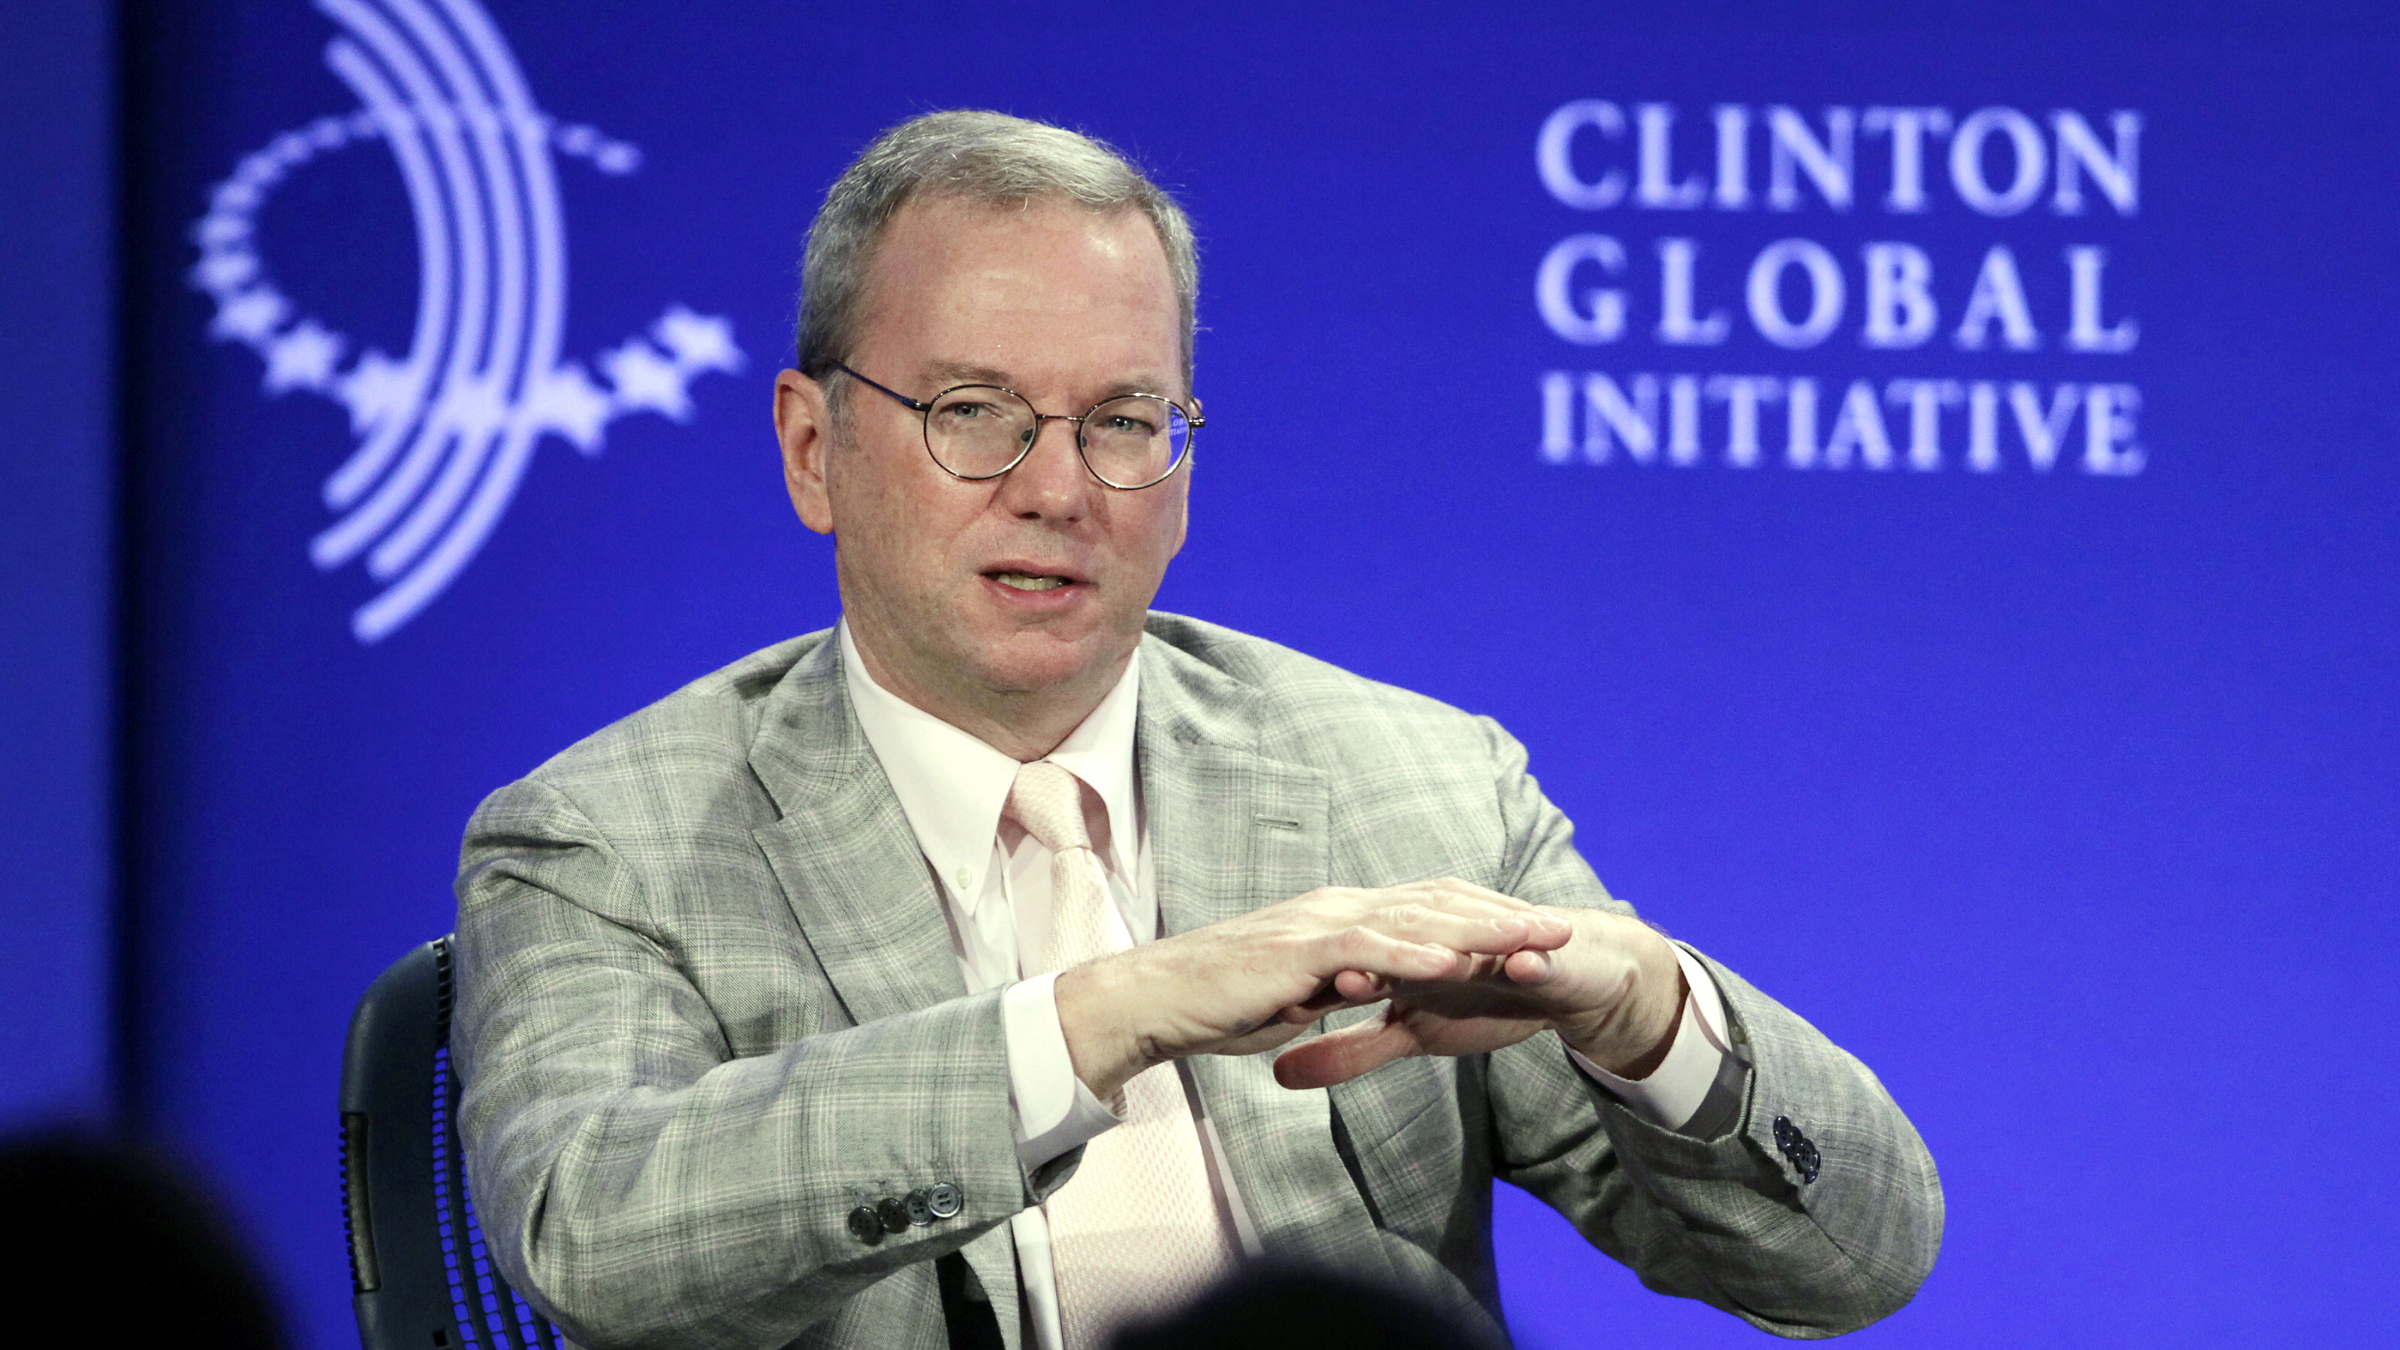 """Eric Schmidt, Chairman of Google, participates in the panel discussion, """"The Pulse of Today's Global Economy,"""" at the Clinton Global Initiative, Thursday, Sept. 26, 2013 in New York. )"""